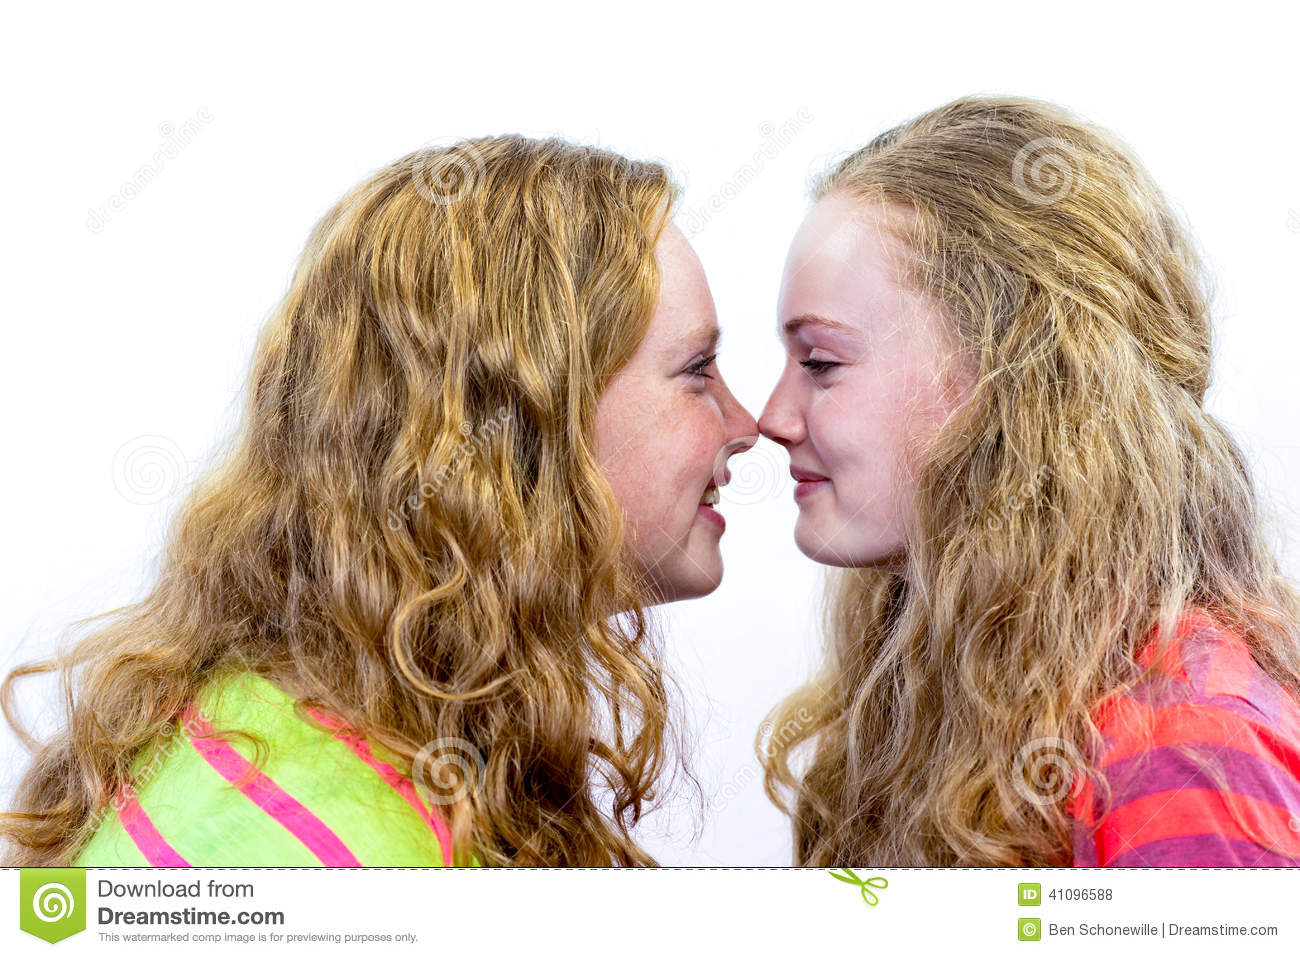 Two Teenage Girls Noses Make Contact Stock Photo - Image ...